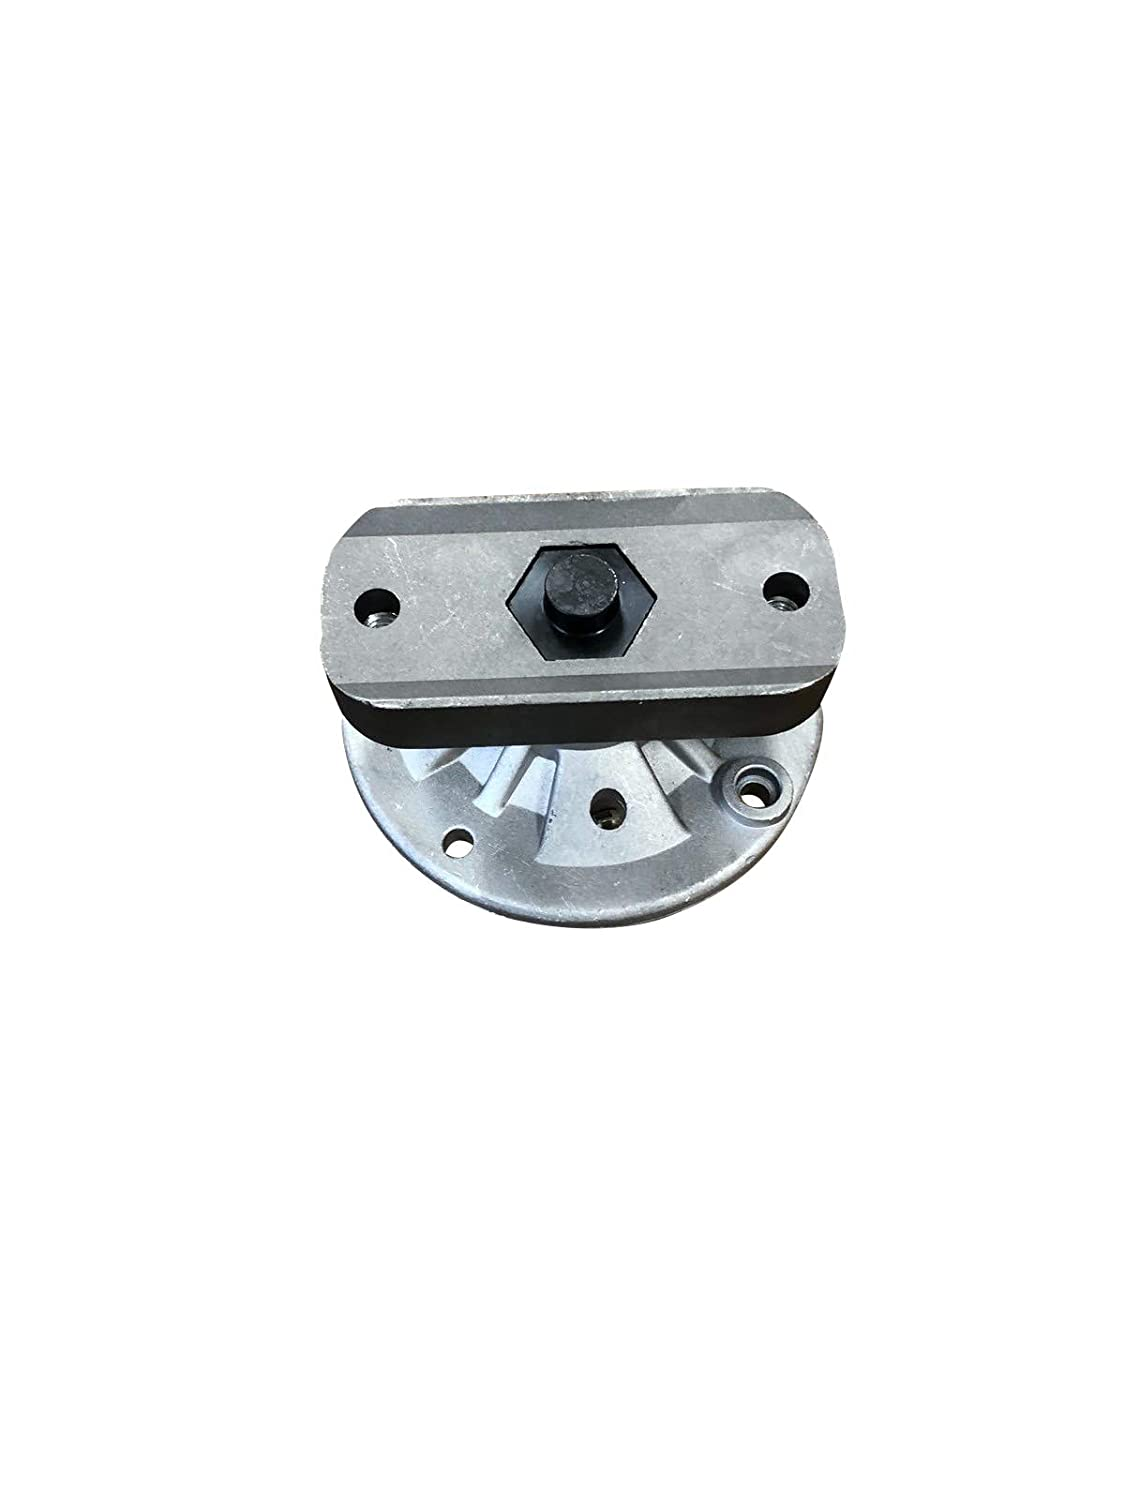 New Spindle Assembly Fits SABO 108-14.5 W//Pulley Nut